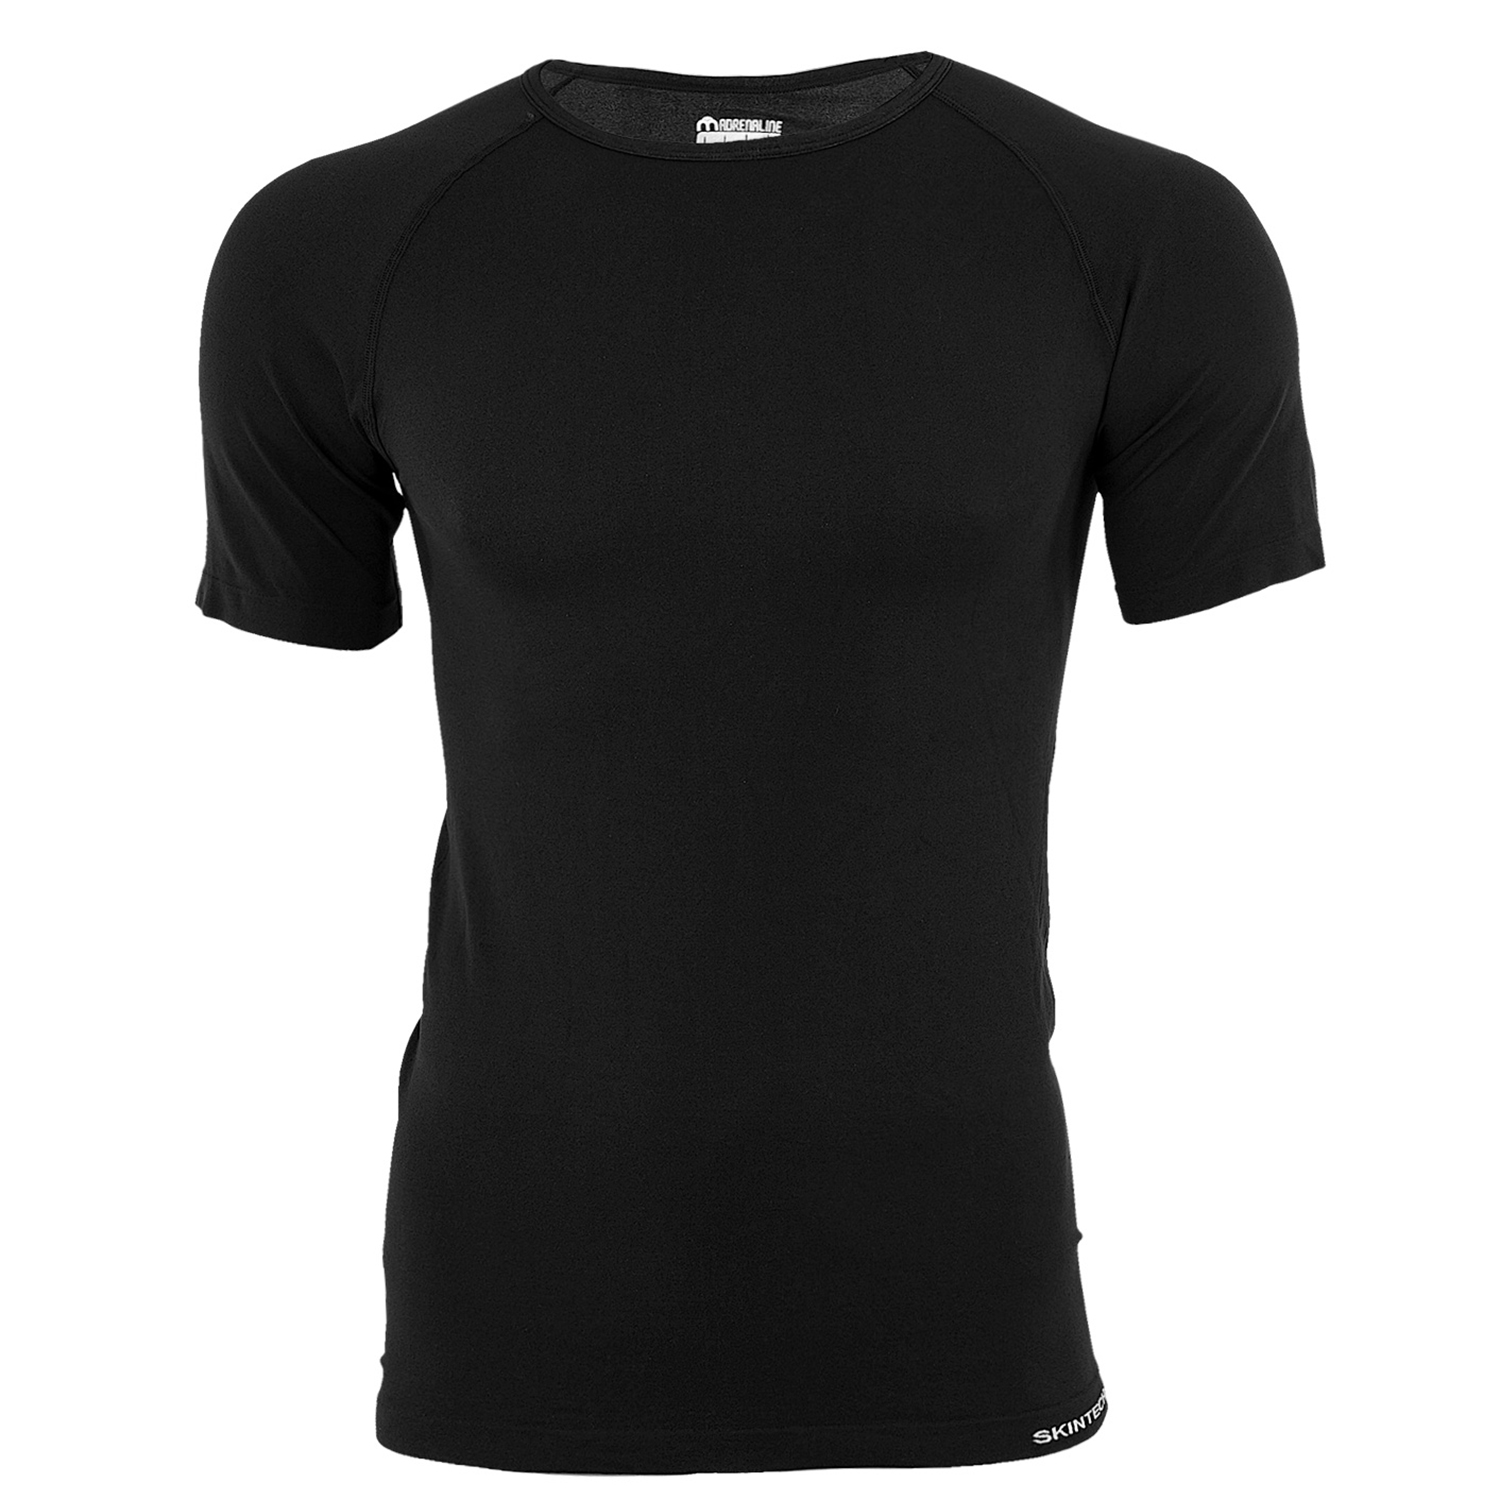 Mico Lightskin T-shirt - Black